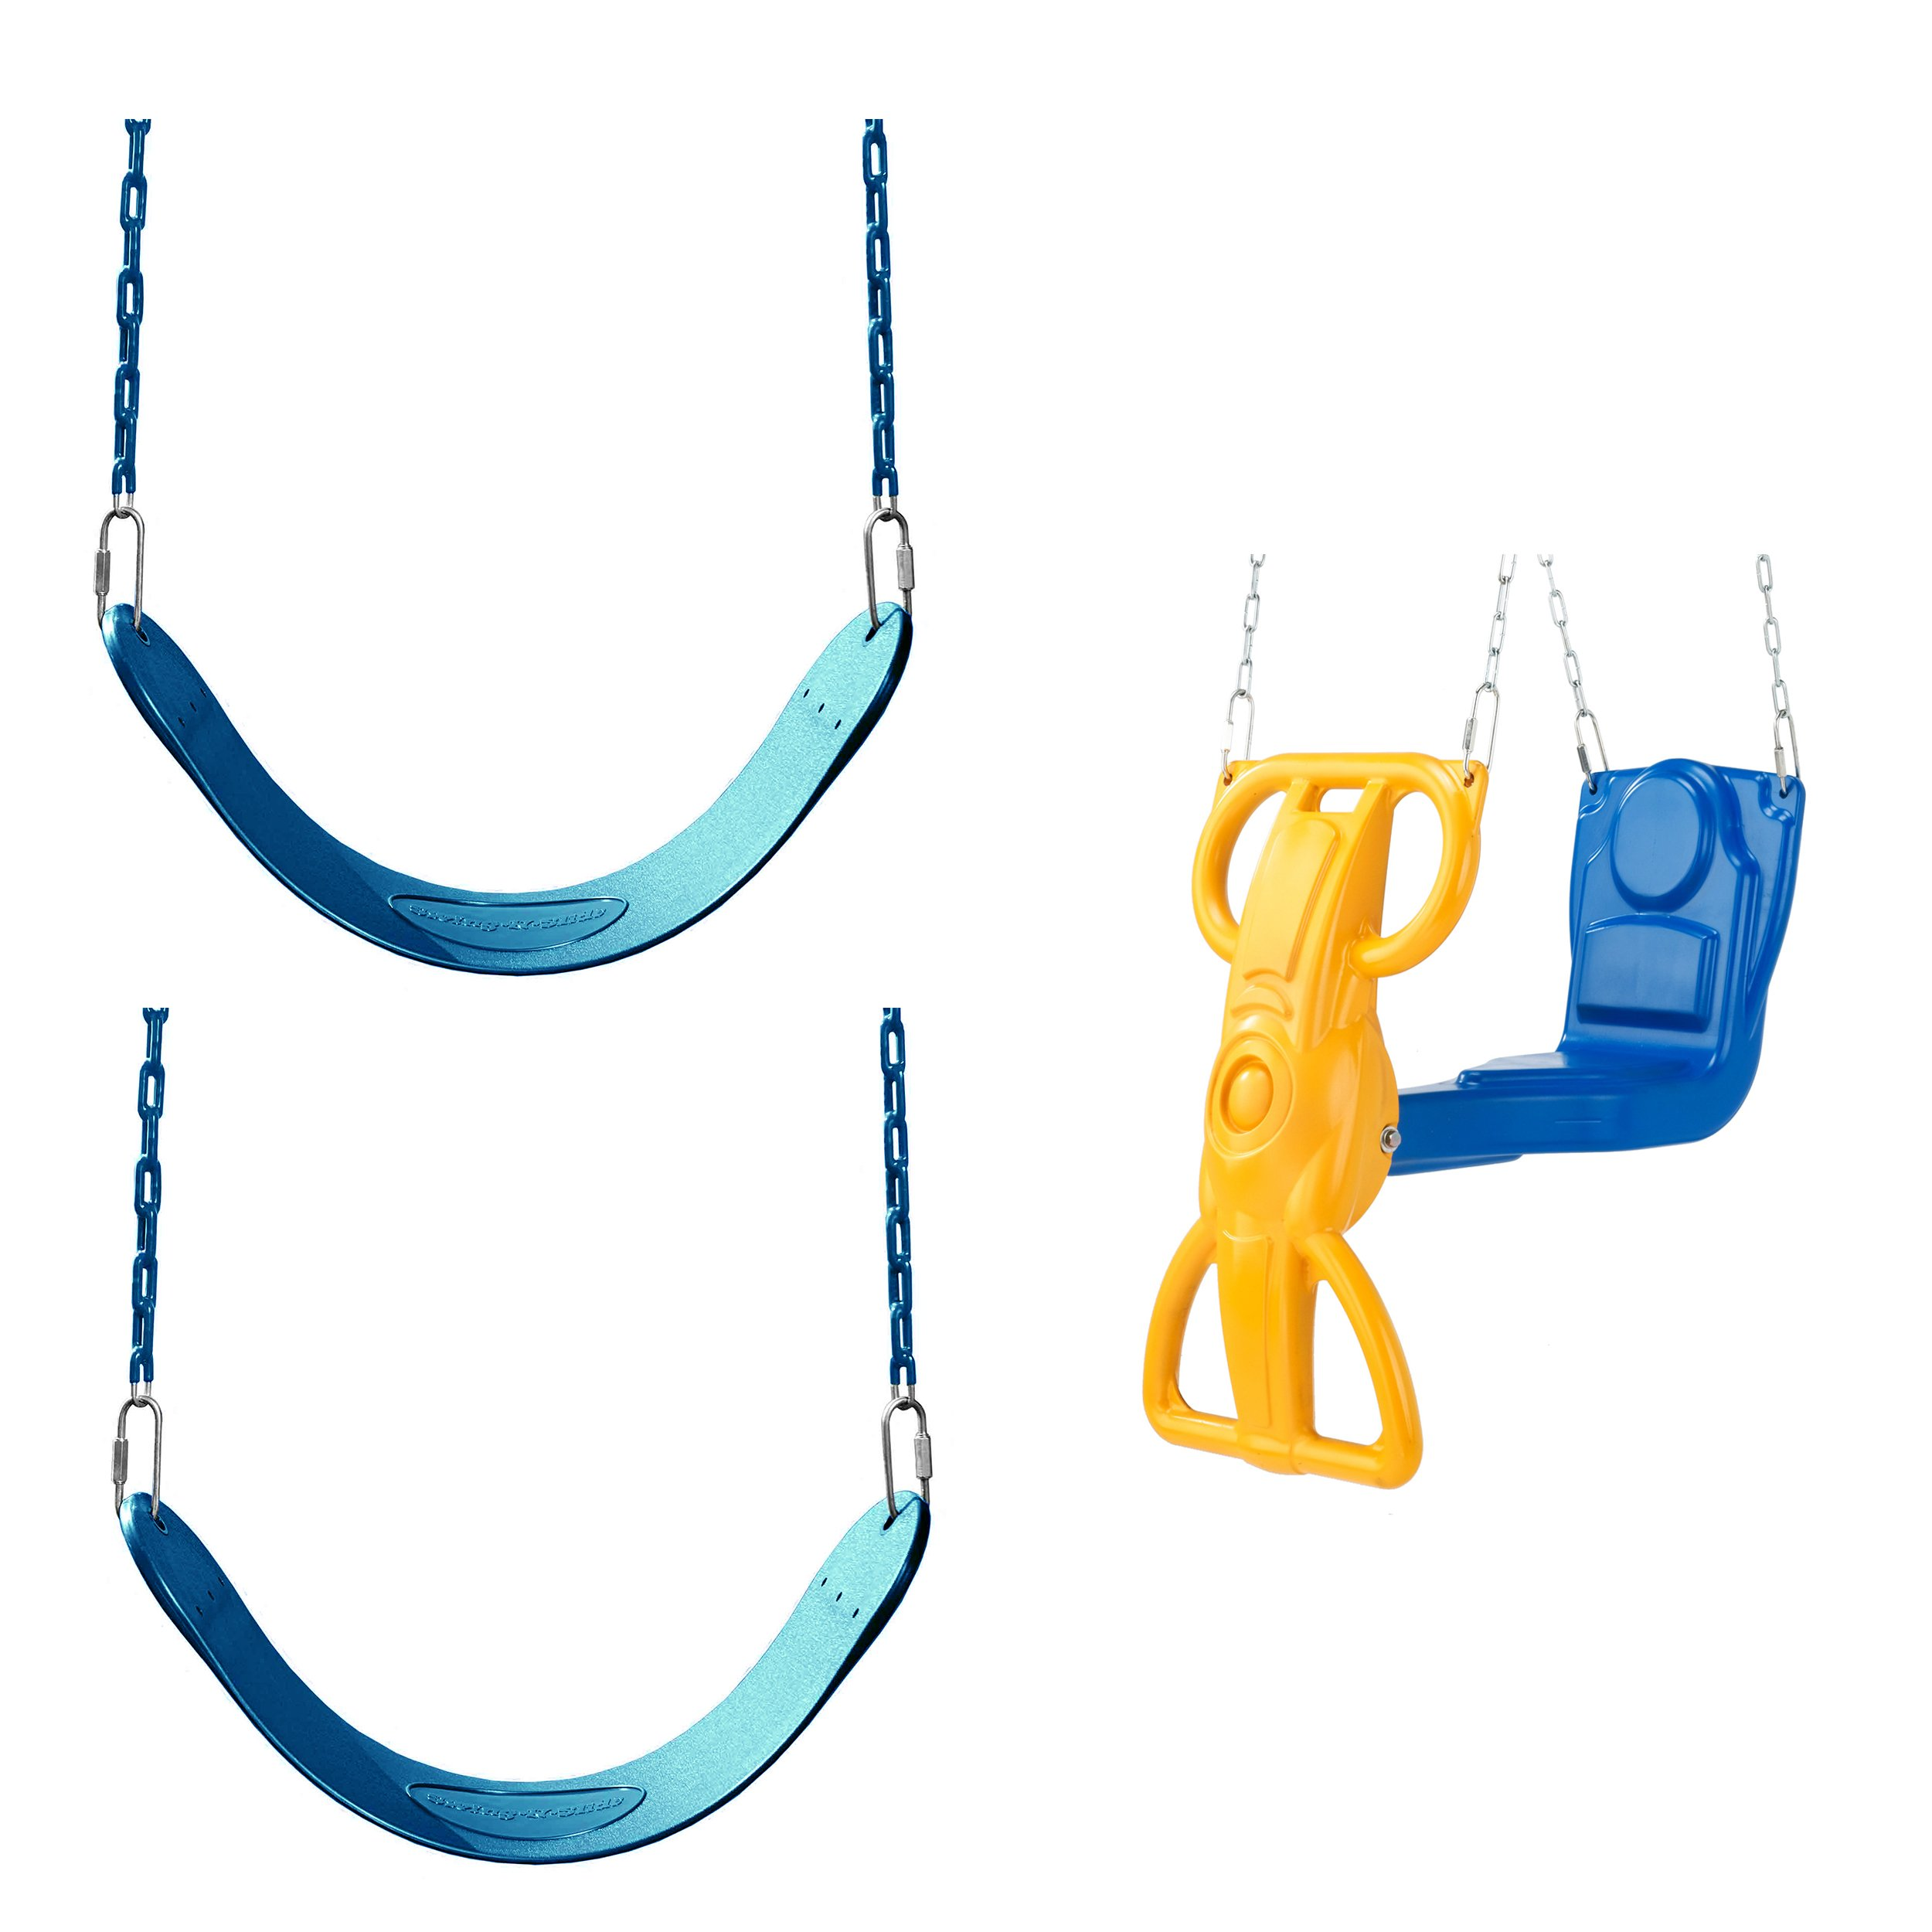 Blue Swing Seat and Glider Bundle - Includes 2 Blue Belted Swing Seats and a Blue and Wind Rider Glider Swing for Swing Sets, Play Sets, etc.